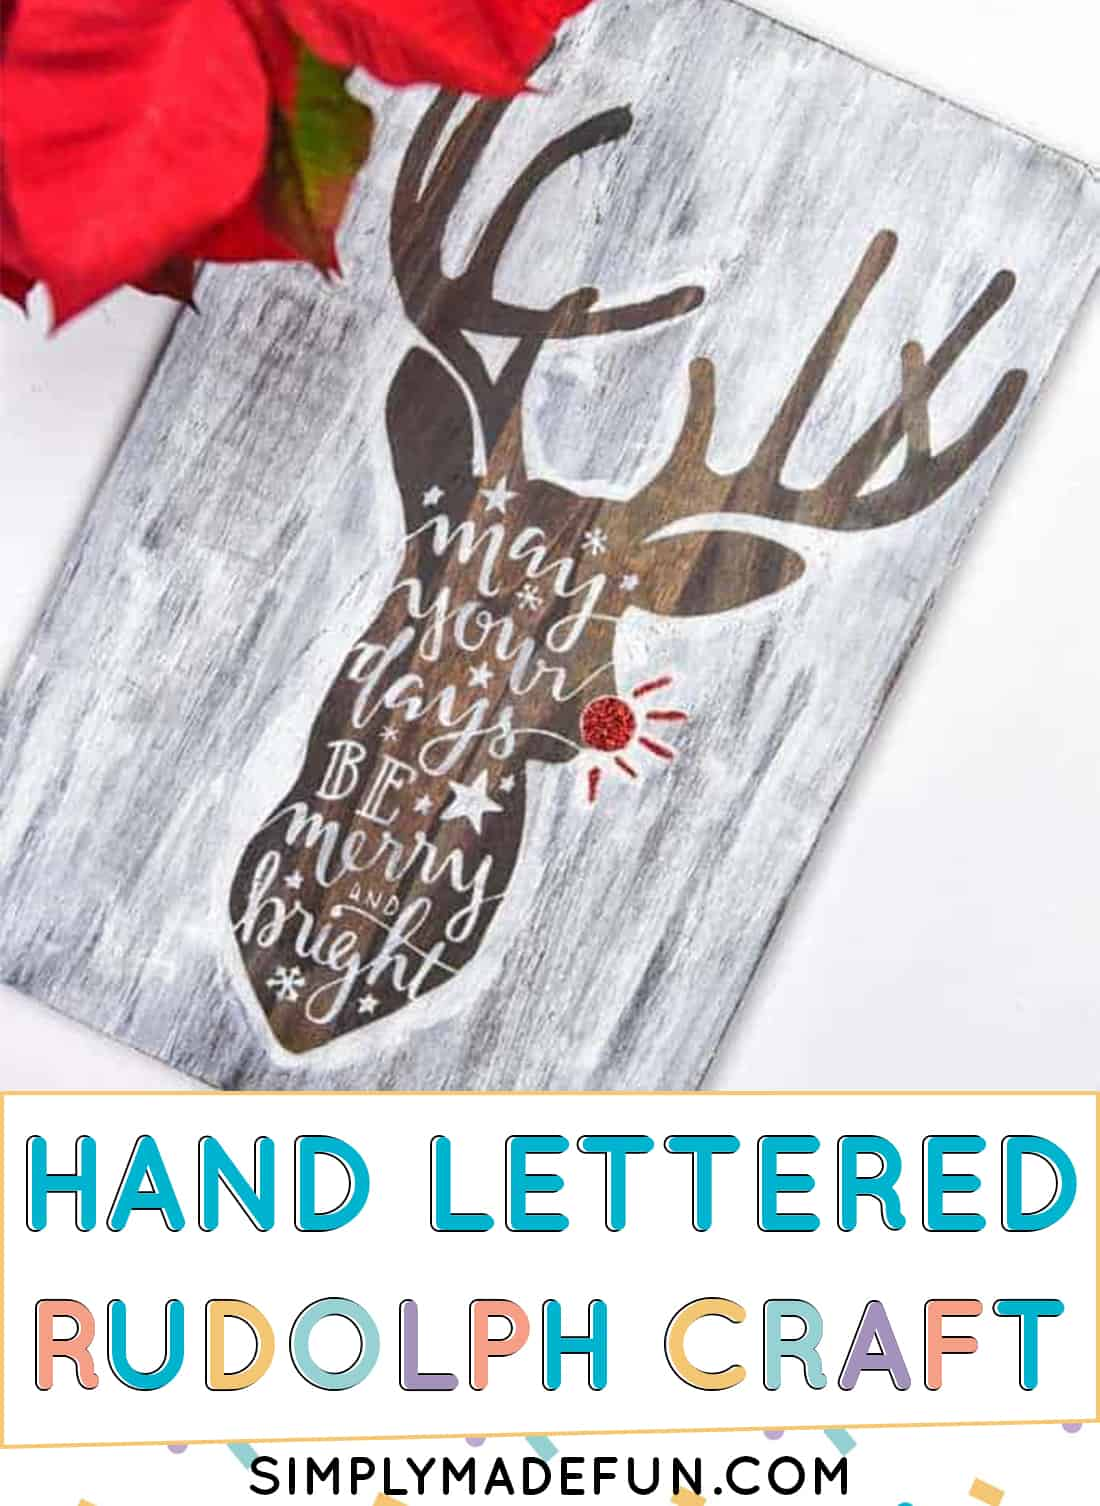 Hand Lettered Rudolph vinyl stencil on a wood sign